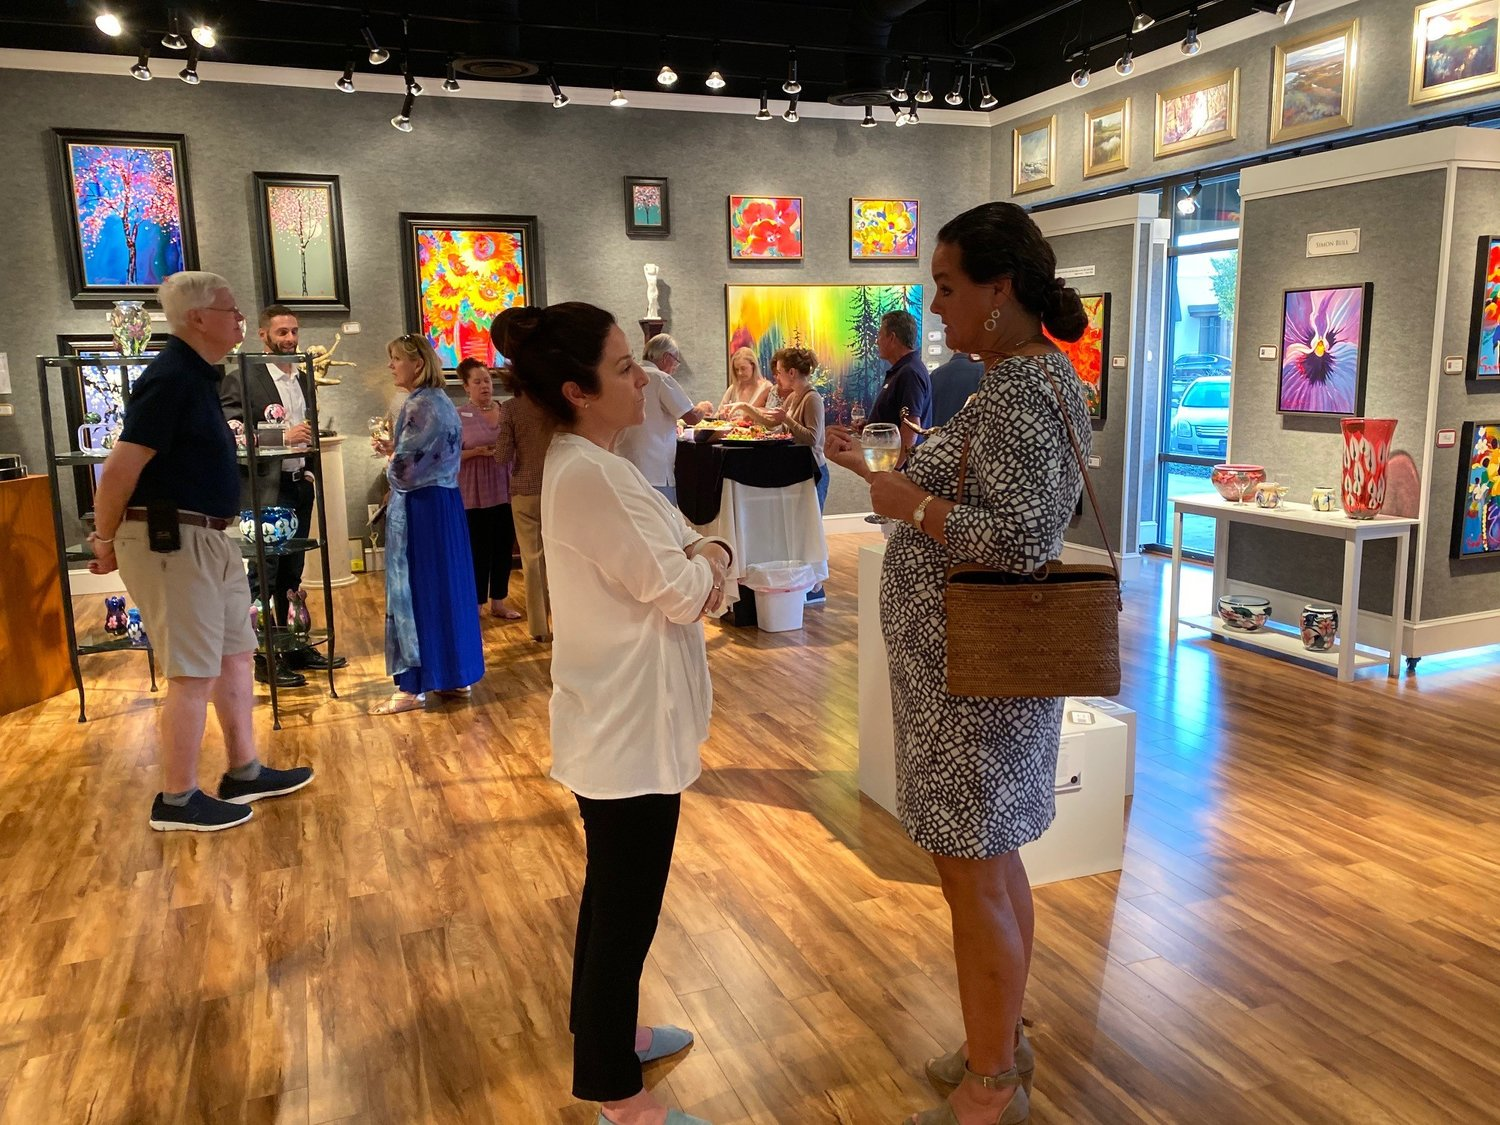 Art lovers attend the Simon Bull exhibition Oct. 11 at Cutter & Cutter Fine Art in Ponte Vedra Beach.